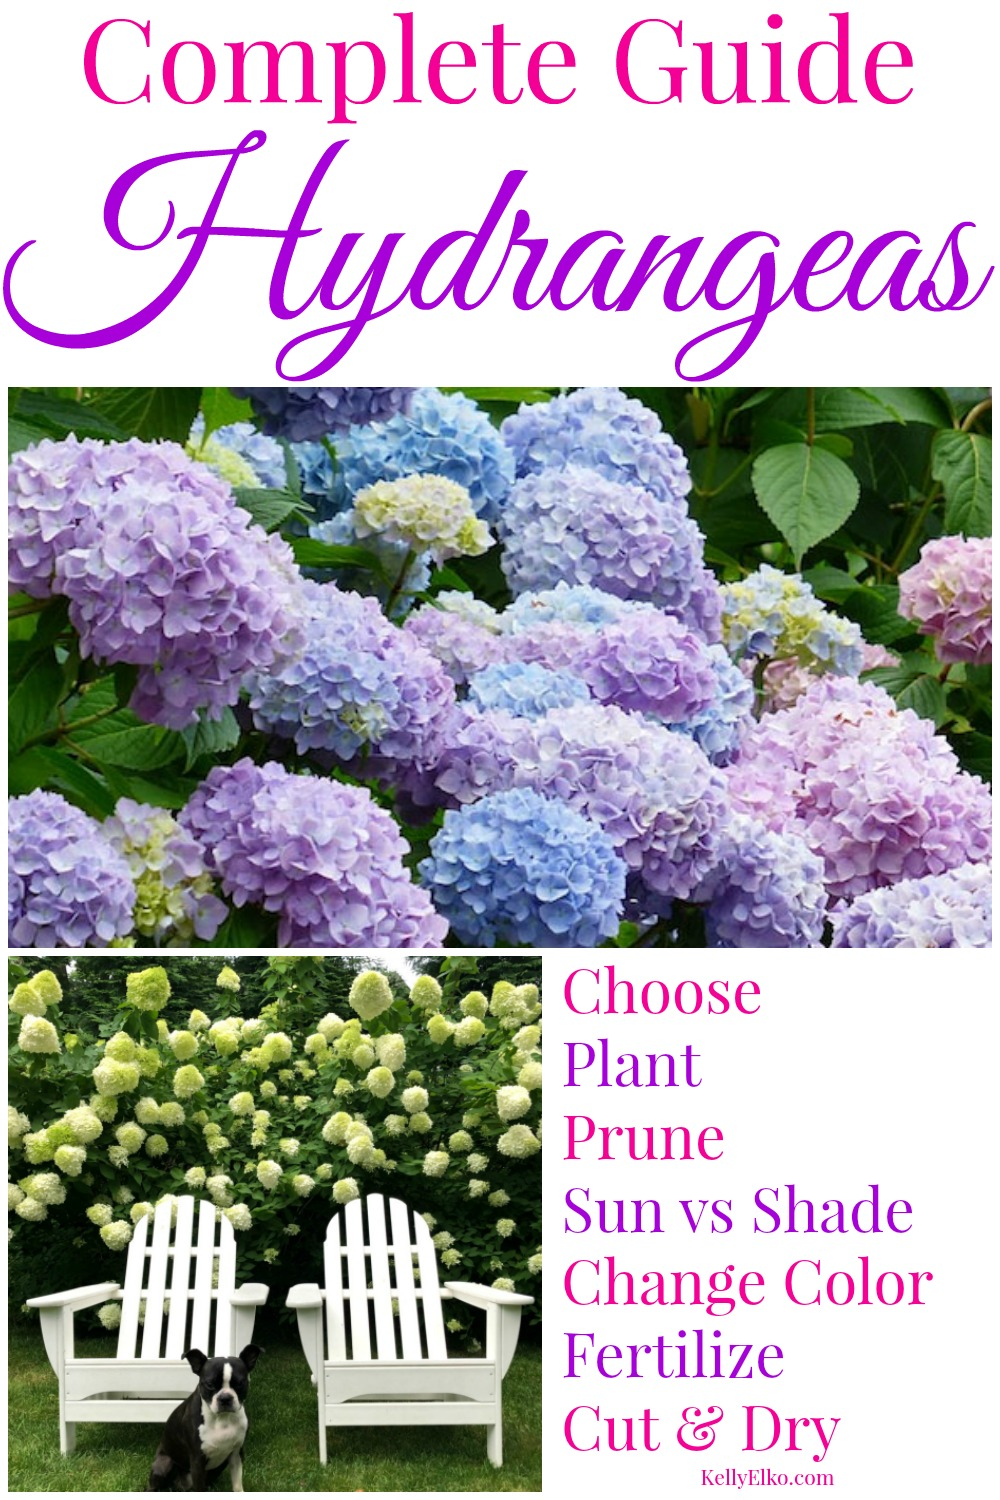 Hydrangeas 101 - the Complete Guide to Growing Beautiful Blooms kellyelko.com #hydrangeas #perennials #hydrangea #gardeners #gardening #gardeningtips #garden